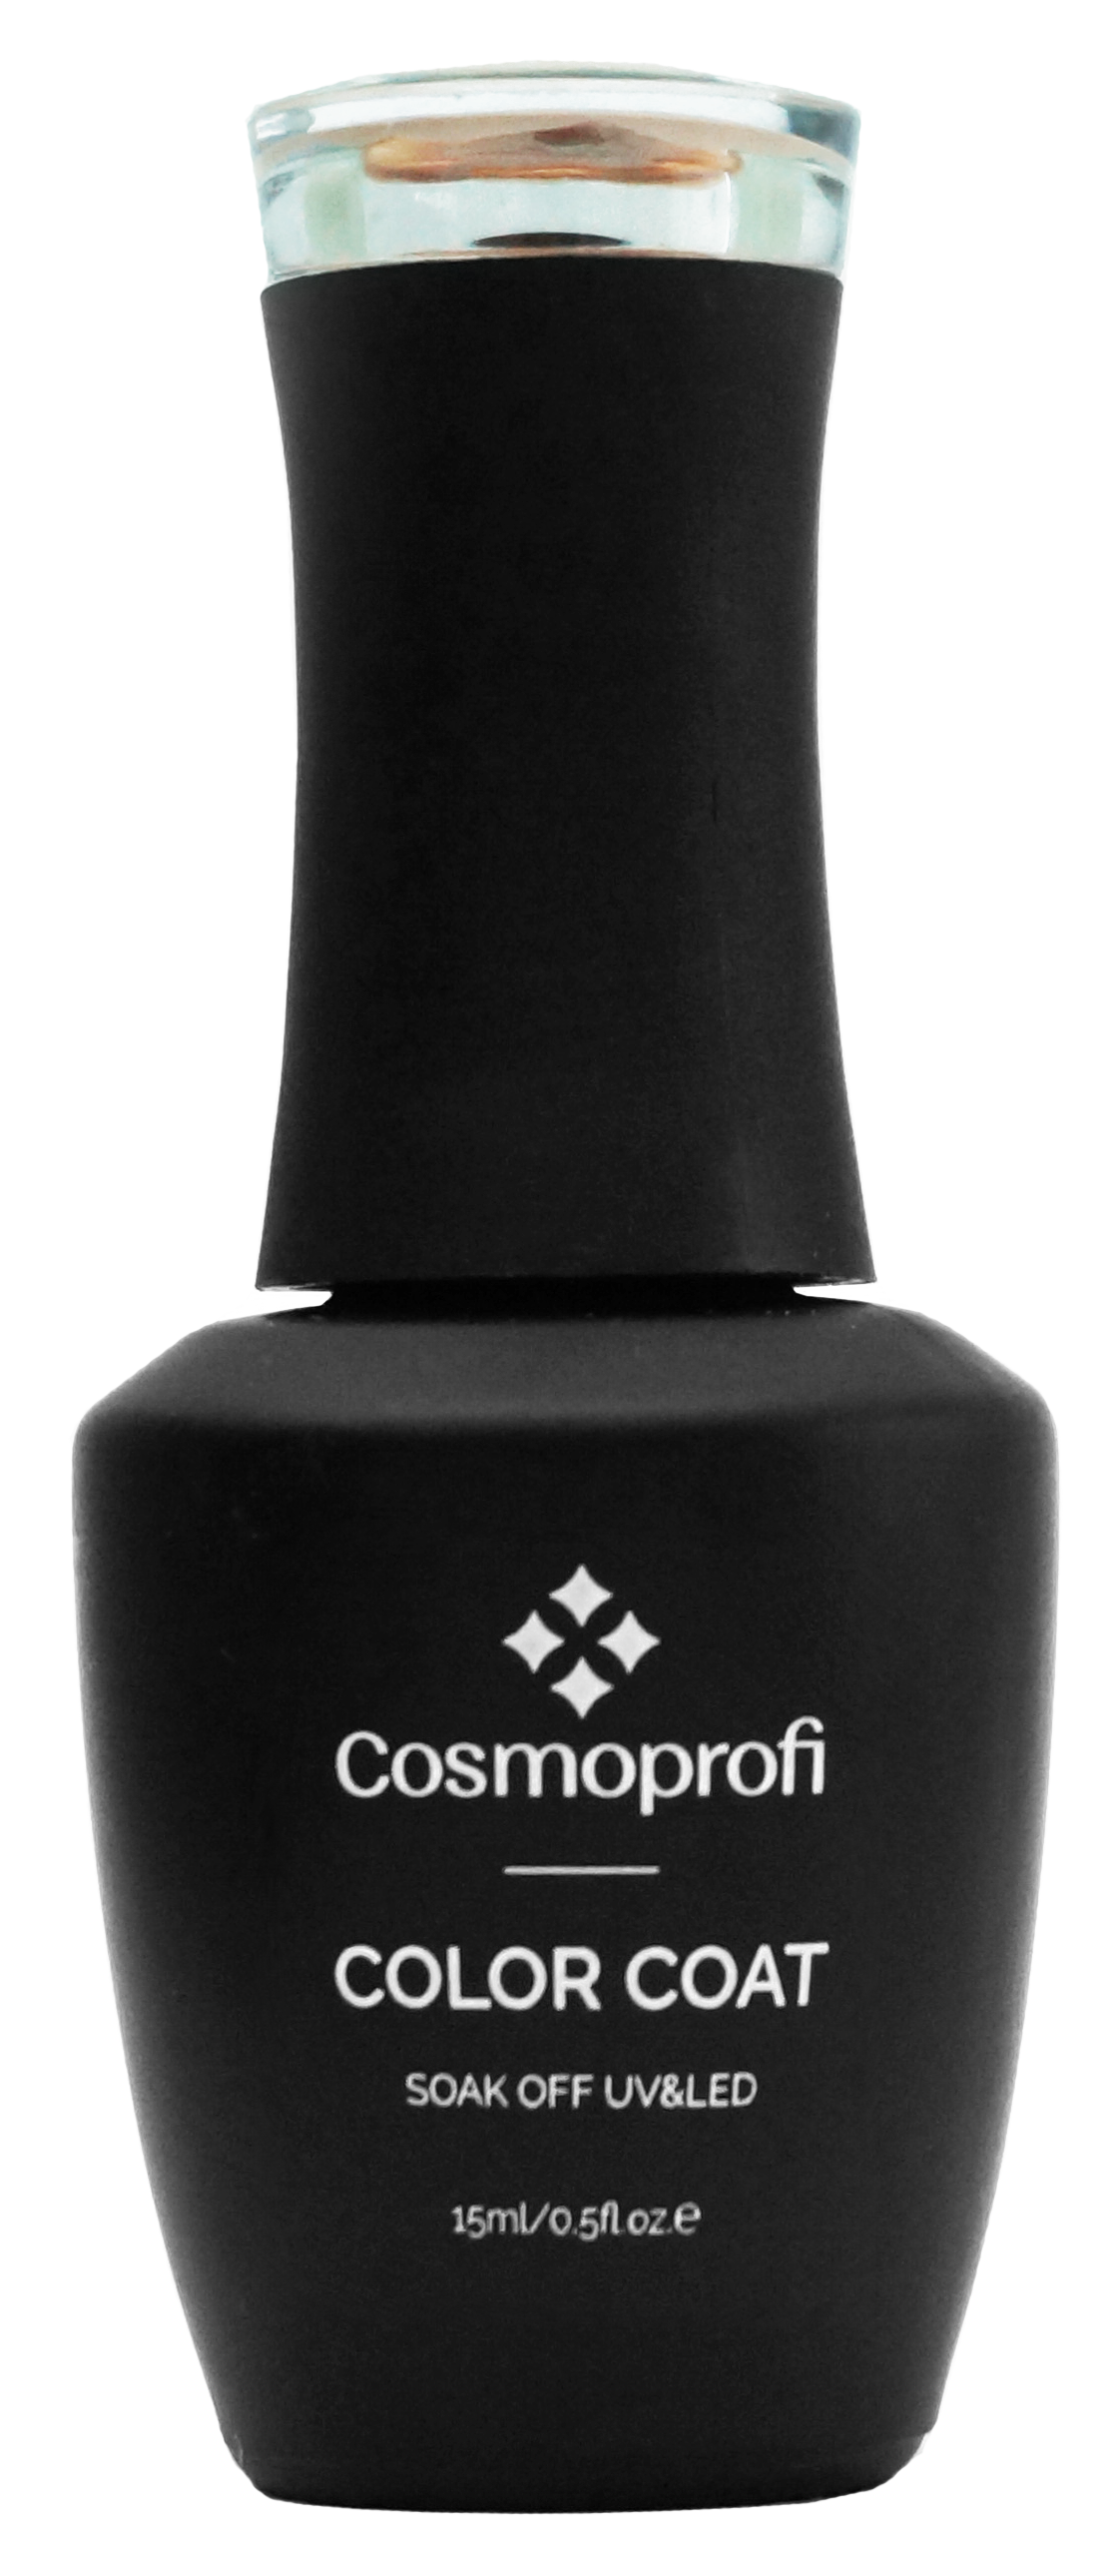 Гель-лак Cosmoprofi, Color coat № 117, 15 мл